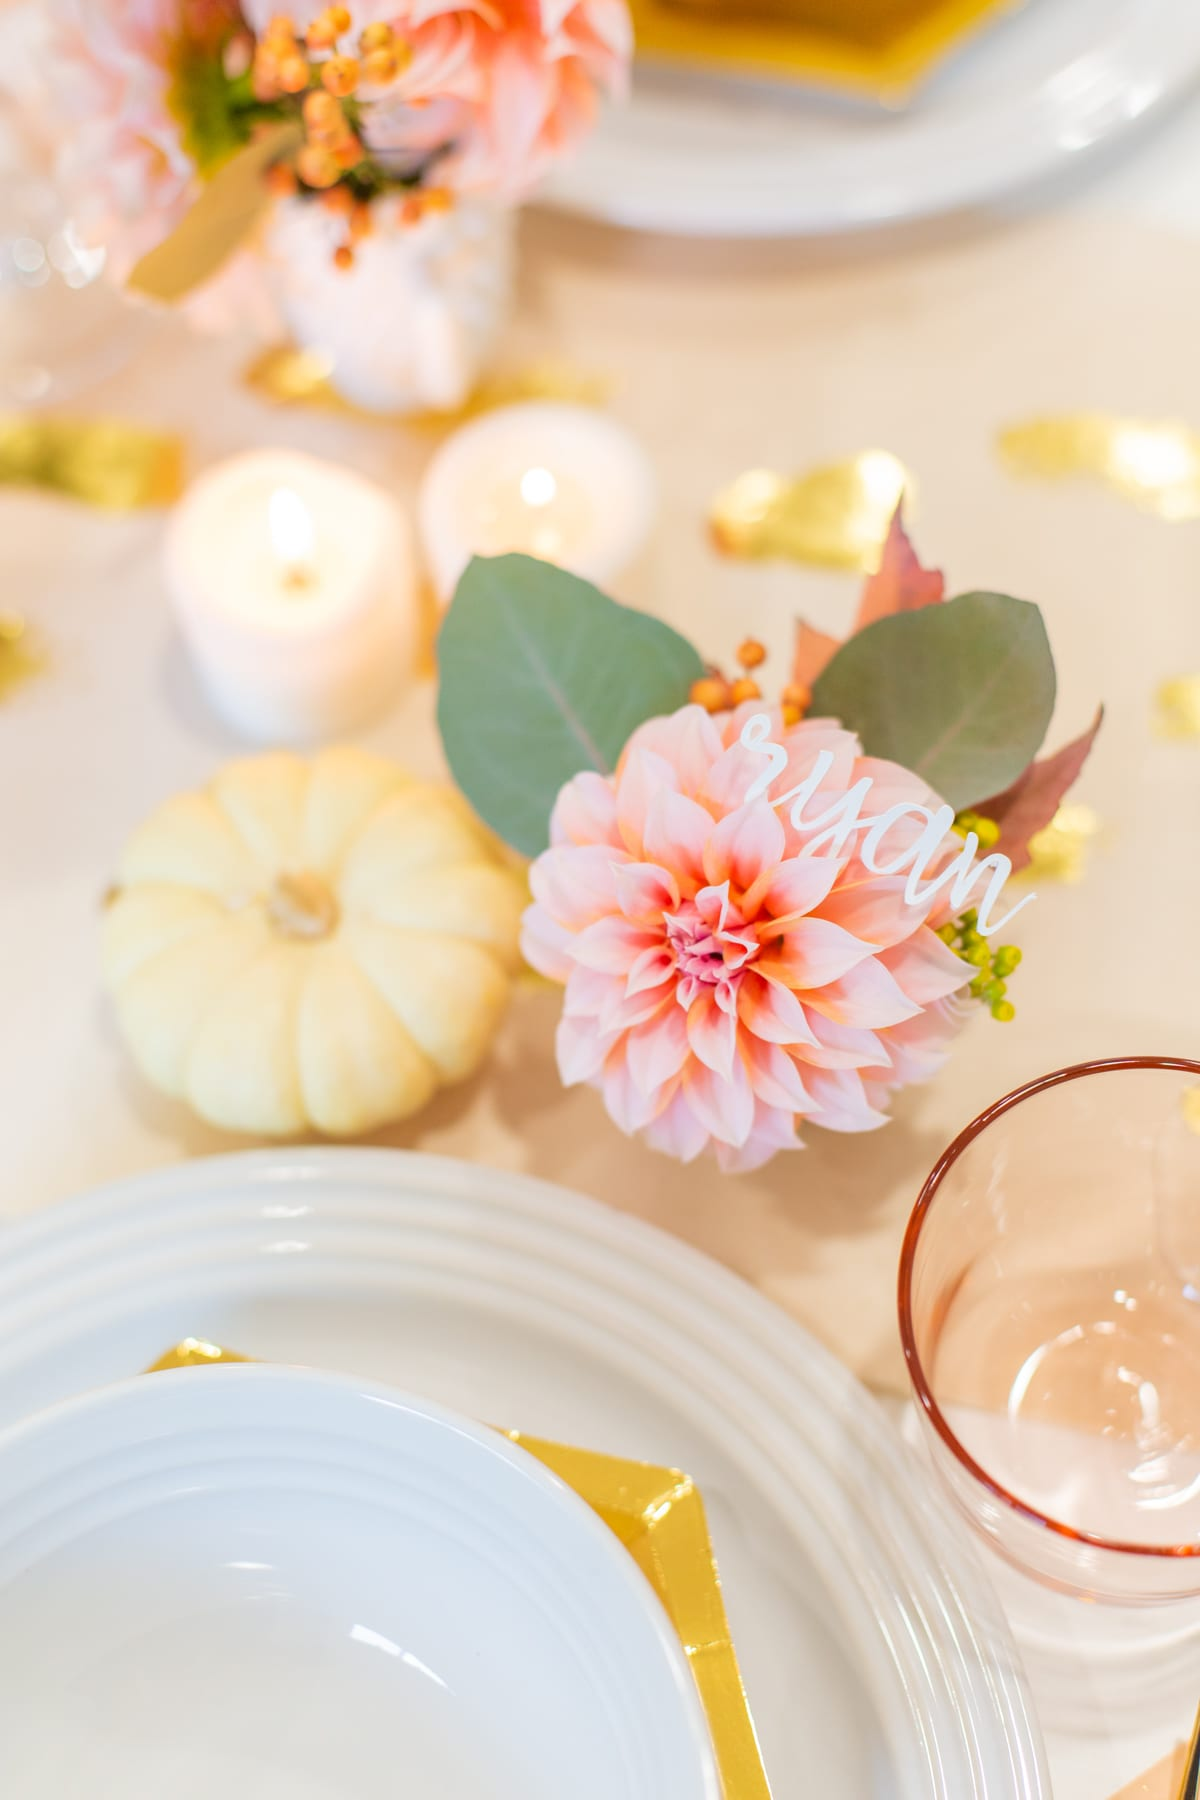 How to Make Mini Bouquet Thanksgiving Place Cards